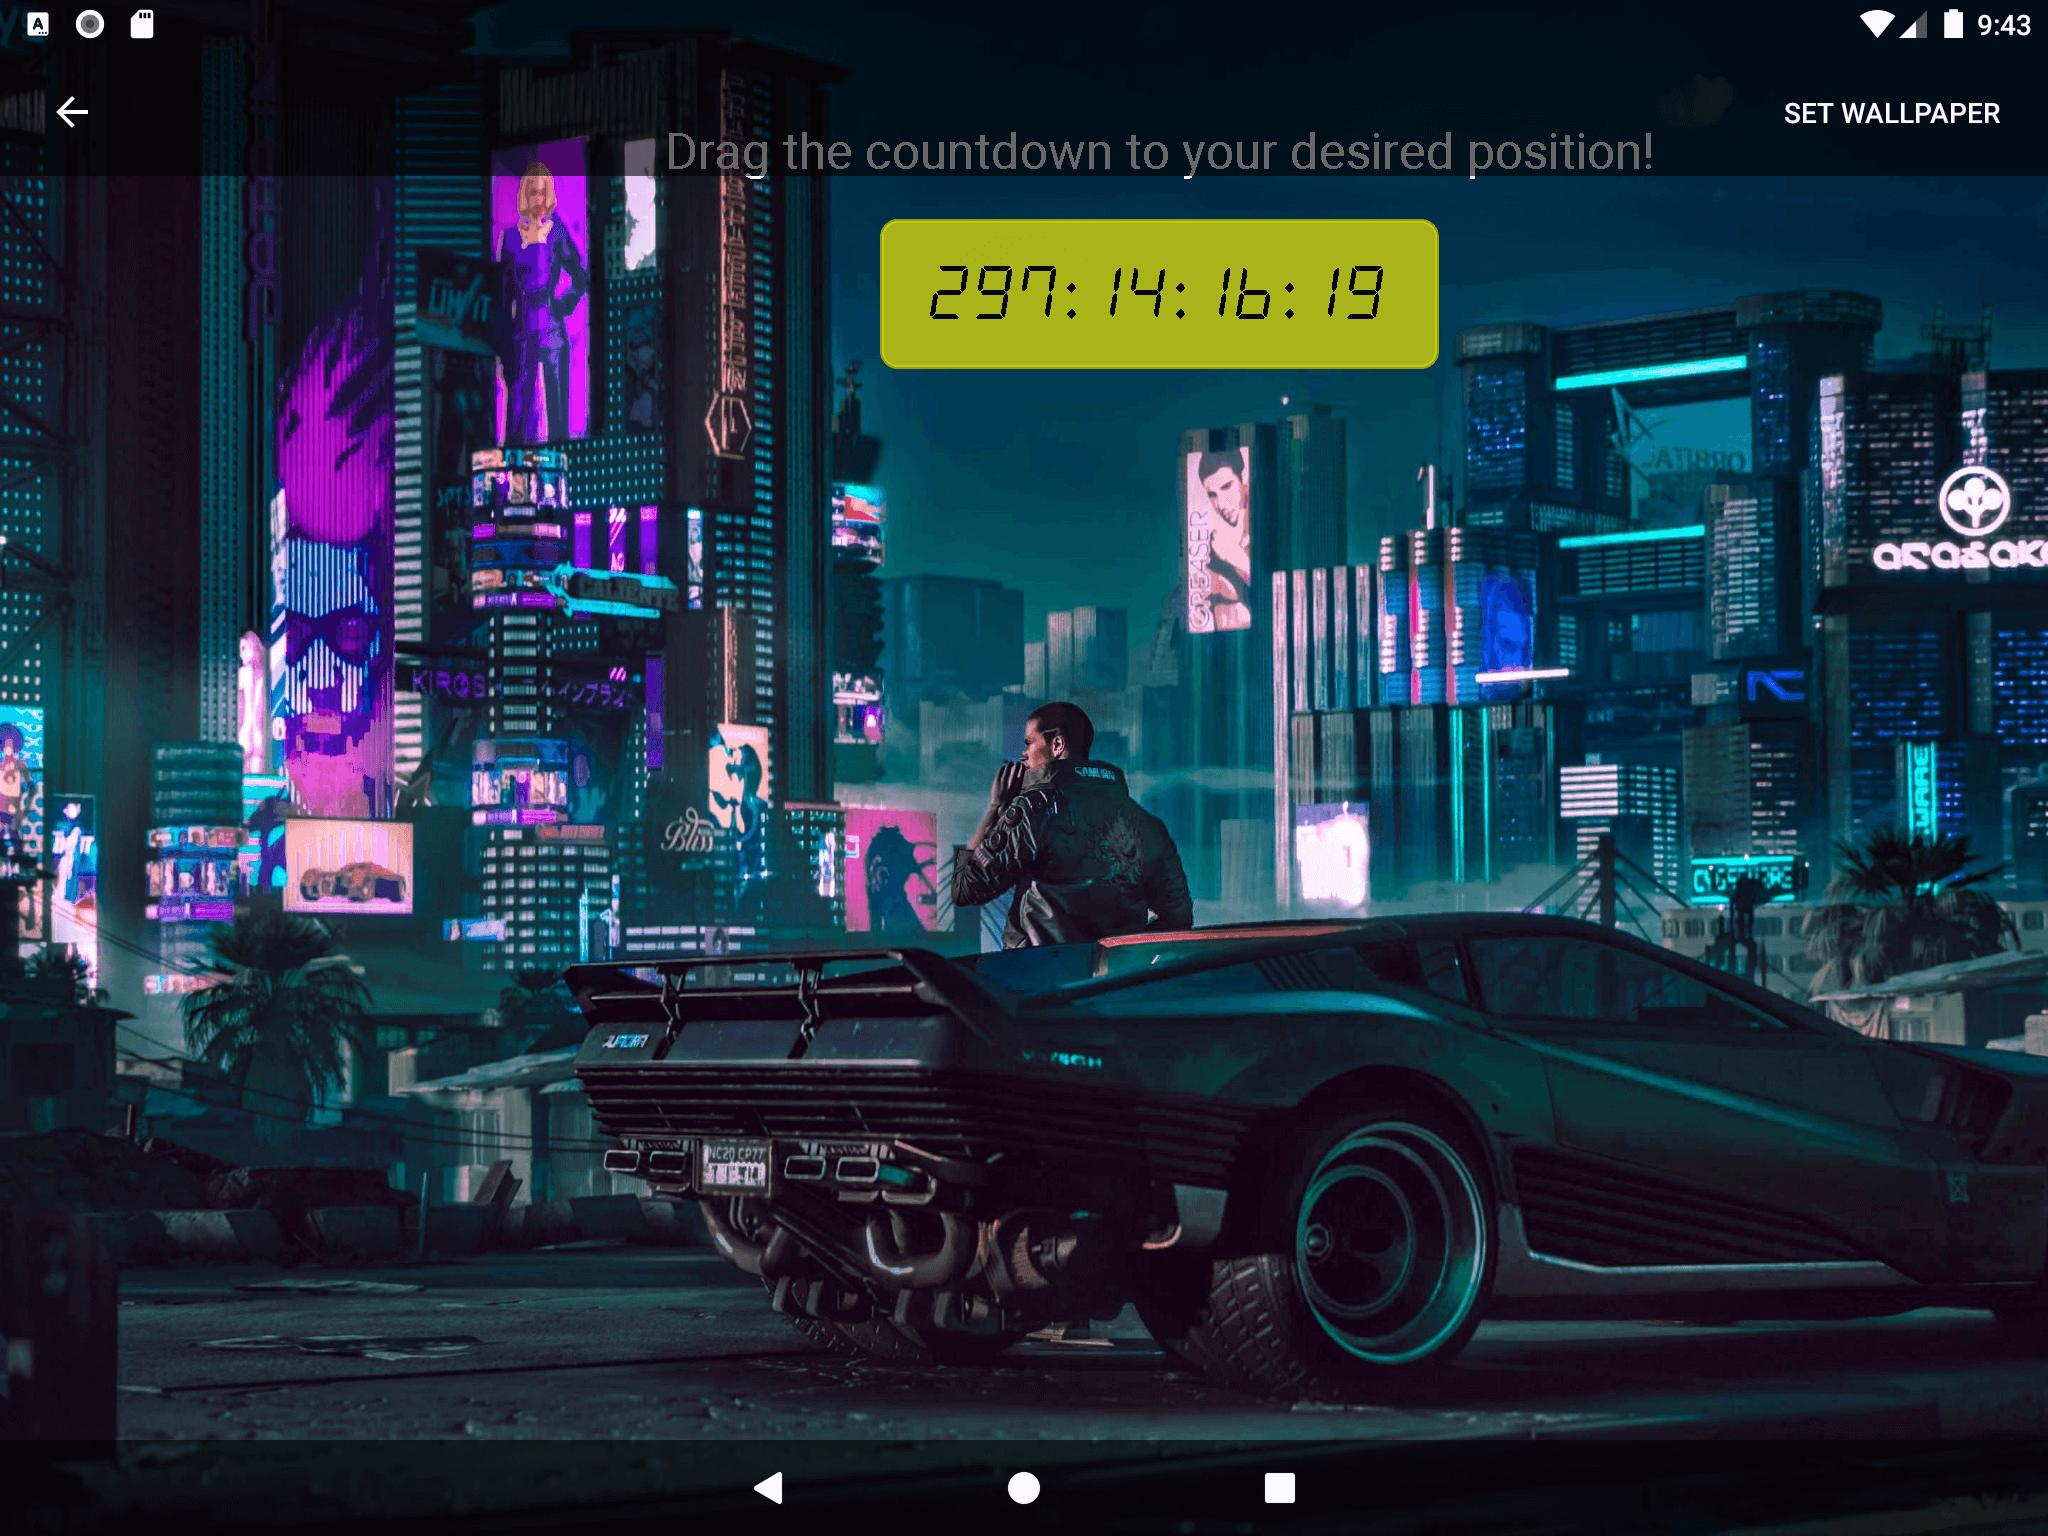 Cyberpunk 2077 Subway Map.Unofficial Cyberpunk 2077 Countdown Live Wallpaper For Android Apk